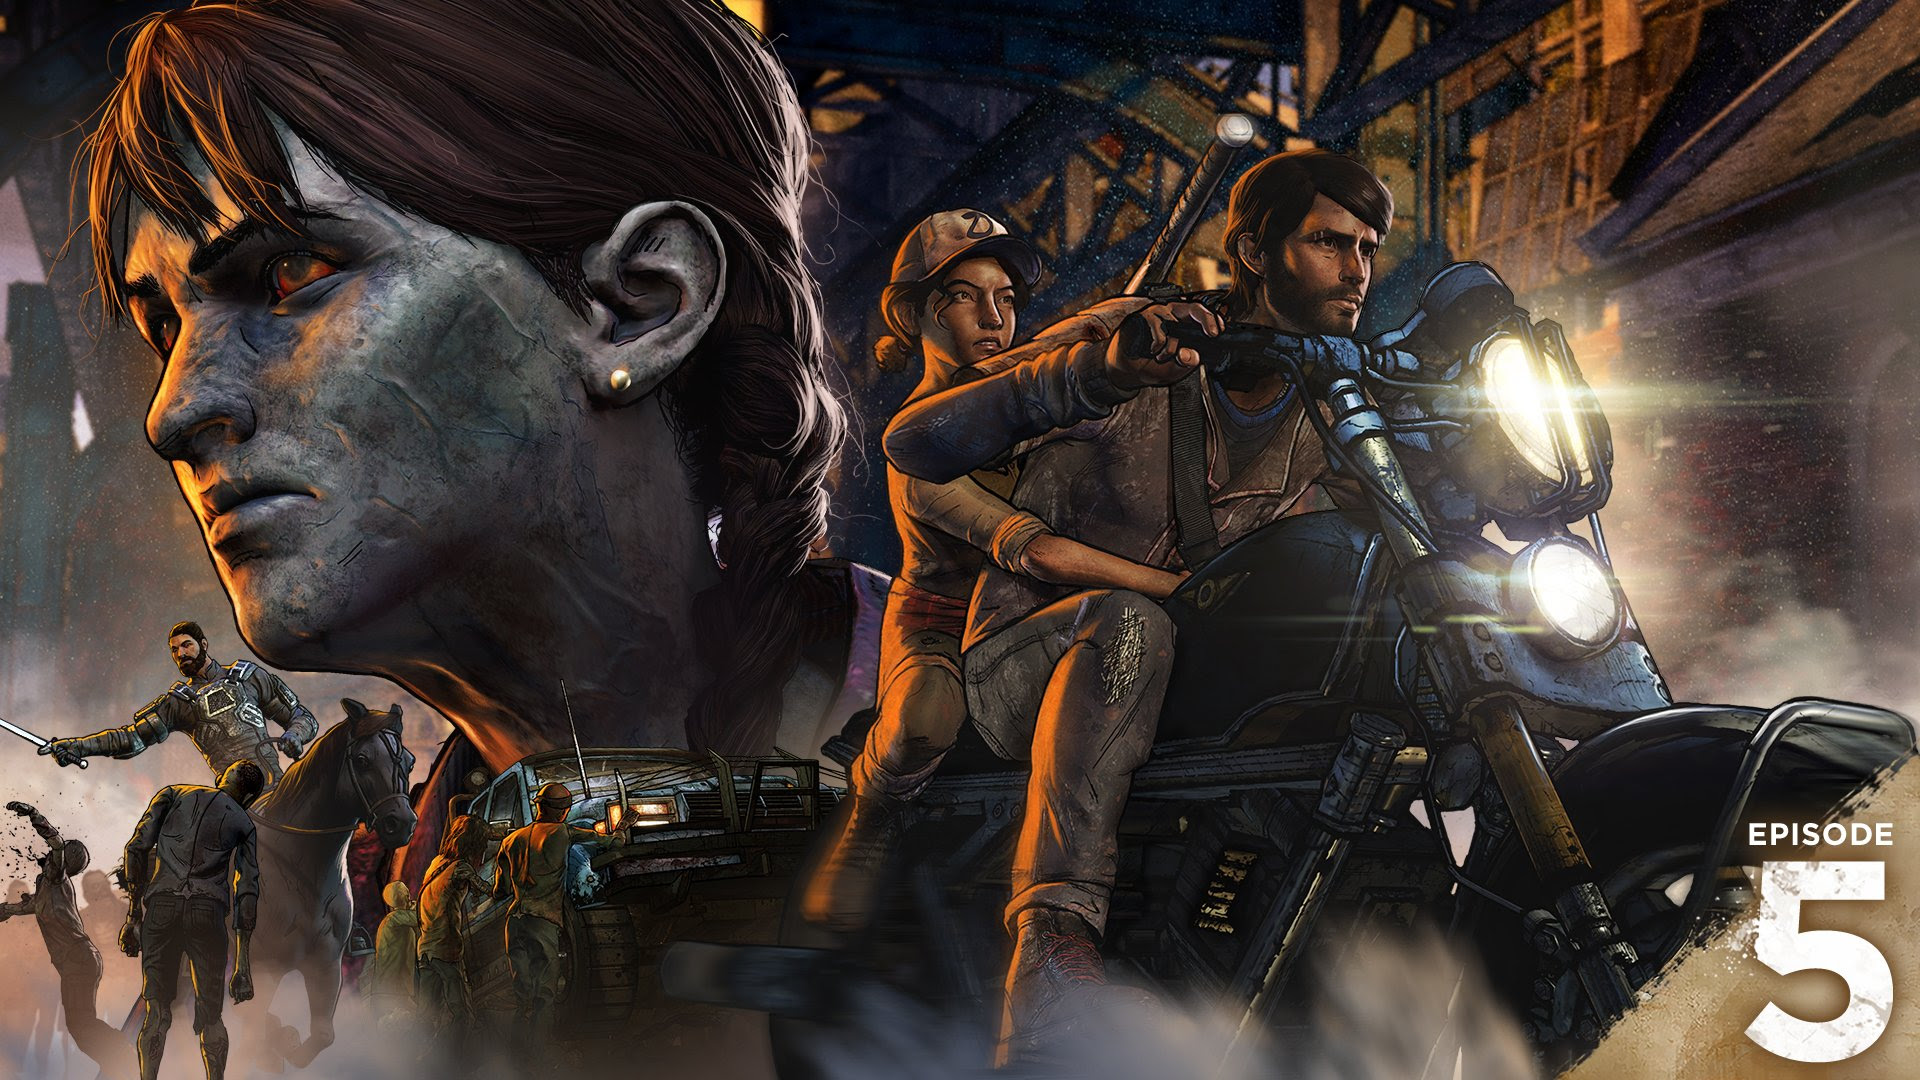 Review: The Walking Dead: A New Frontier: From the Gallows screenshot